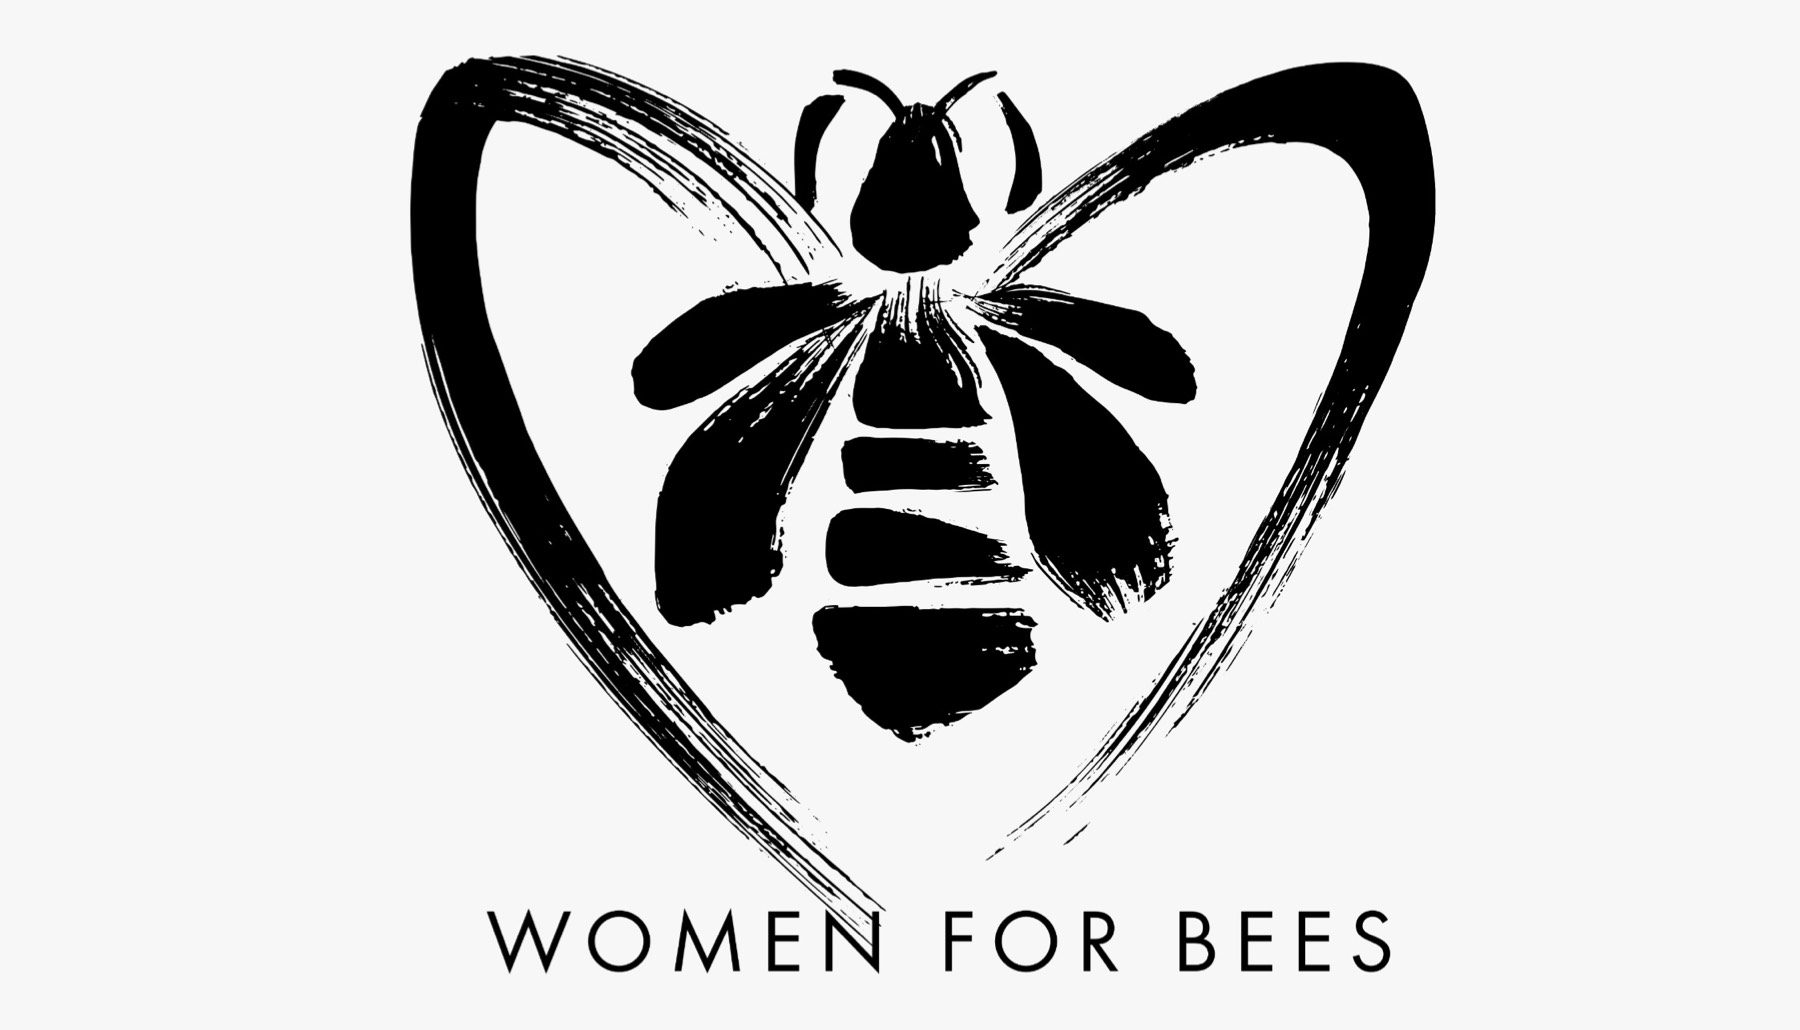 Women for bees